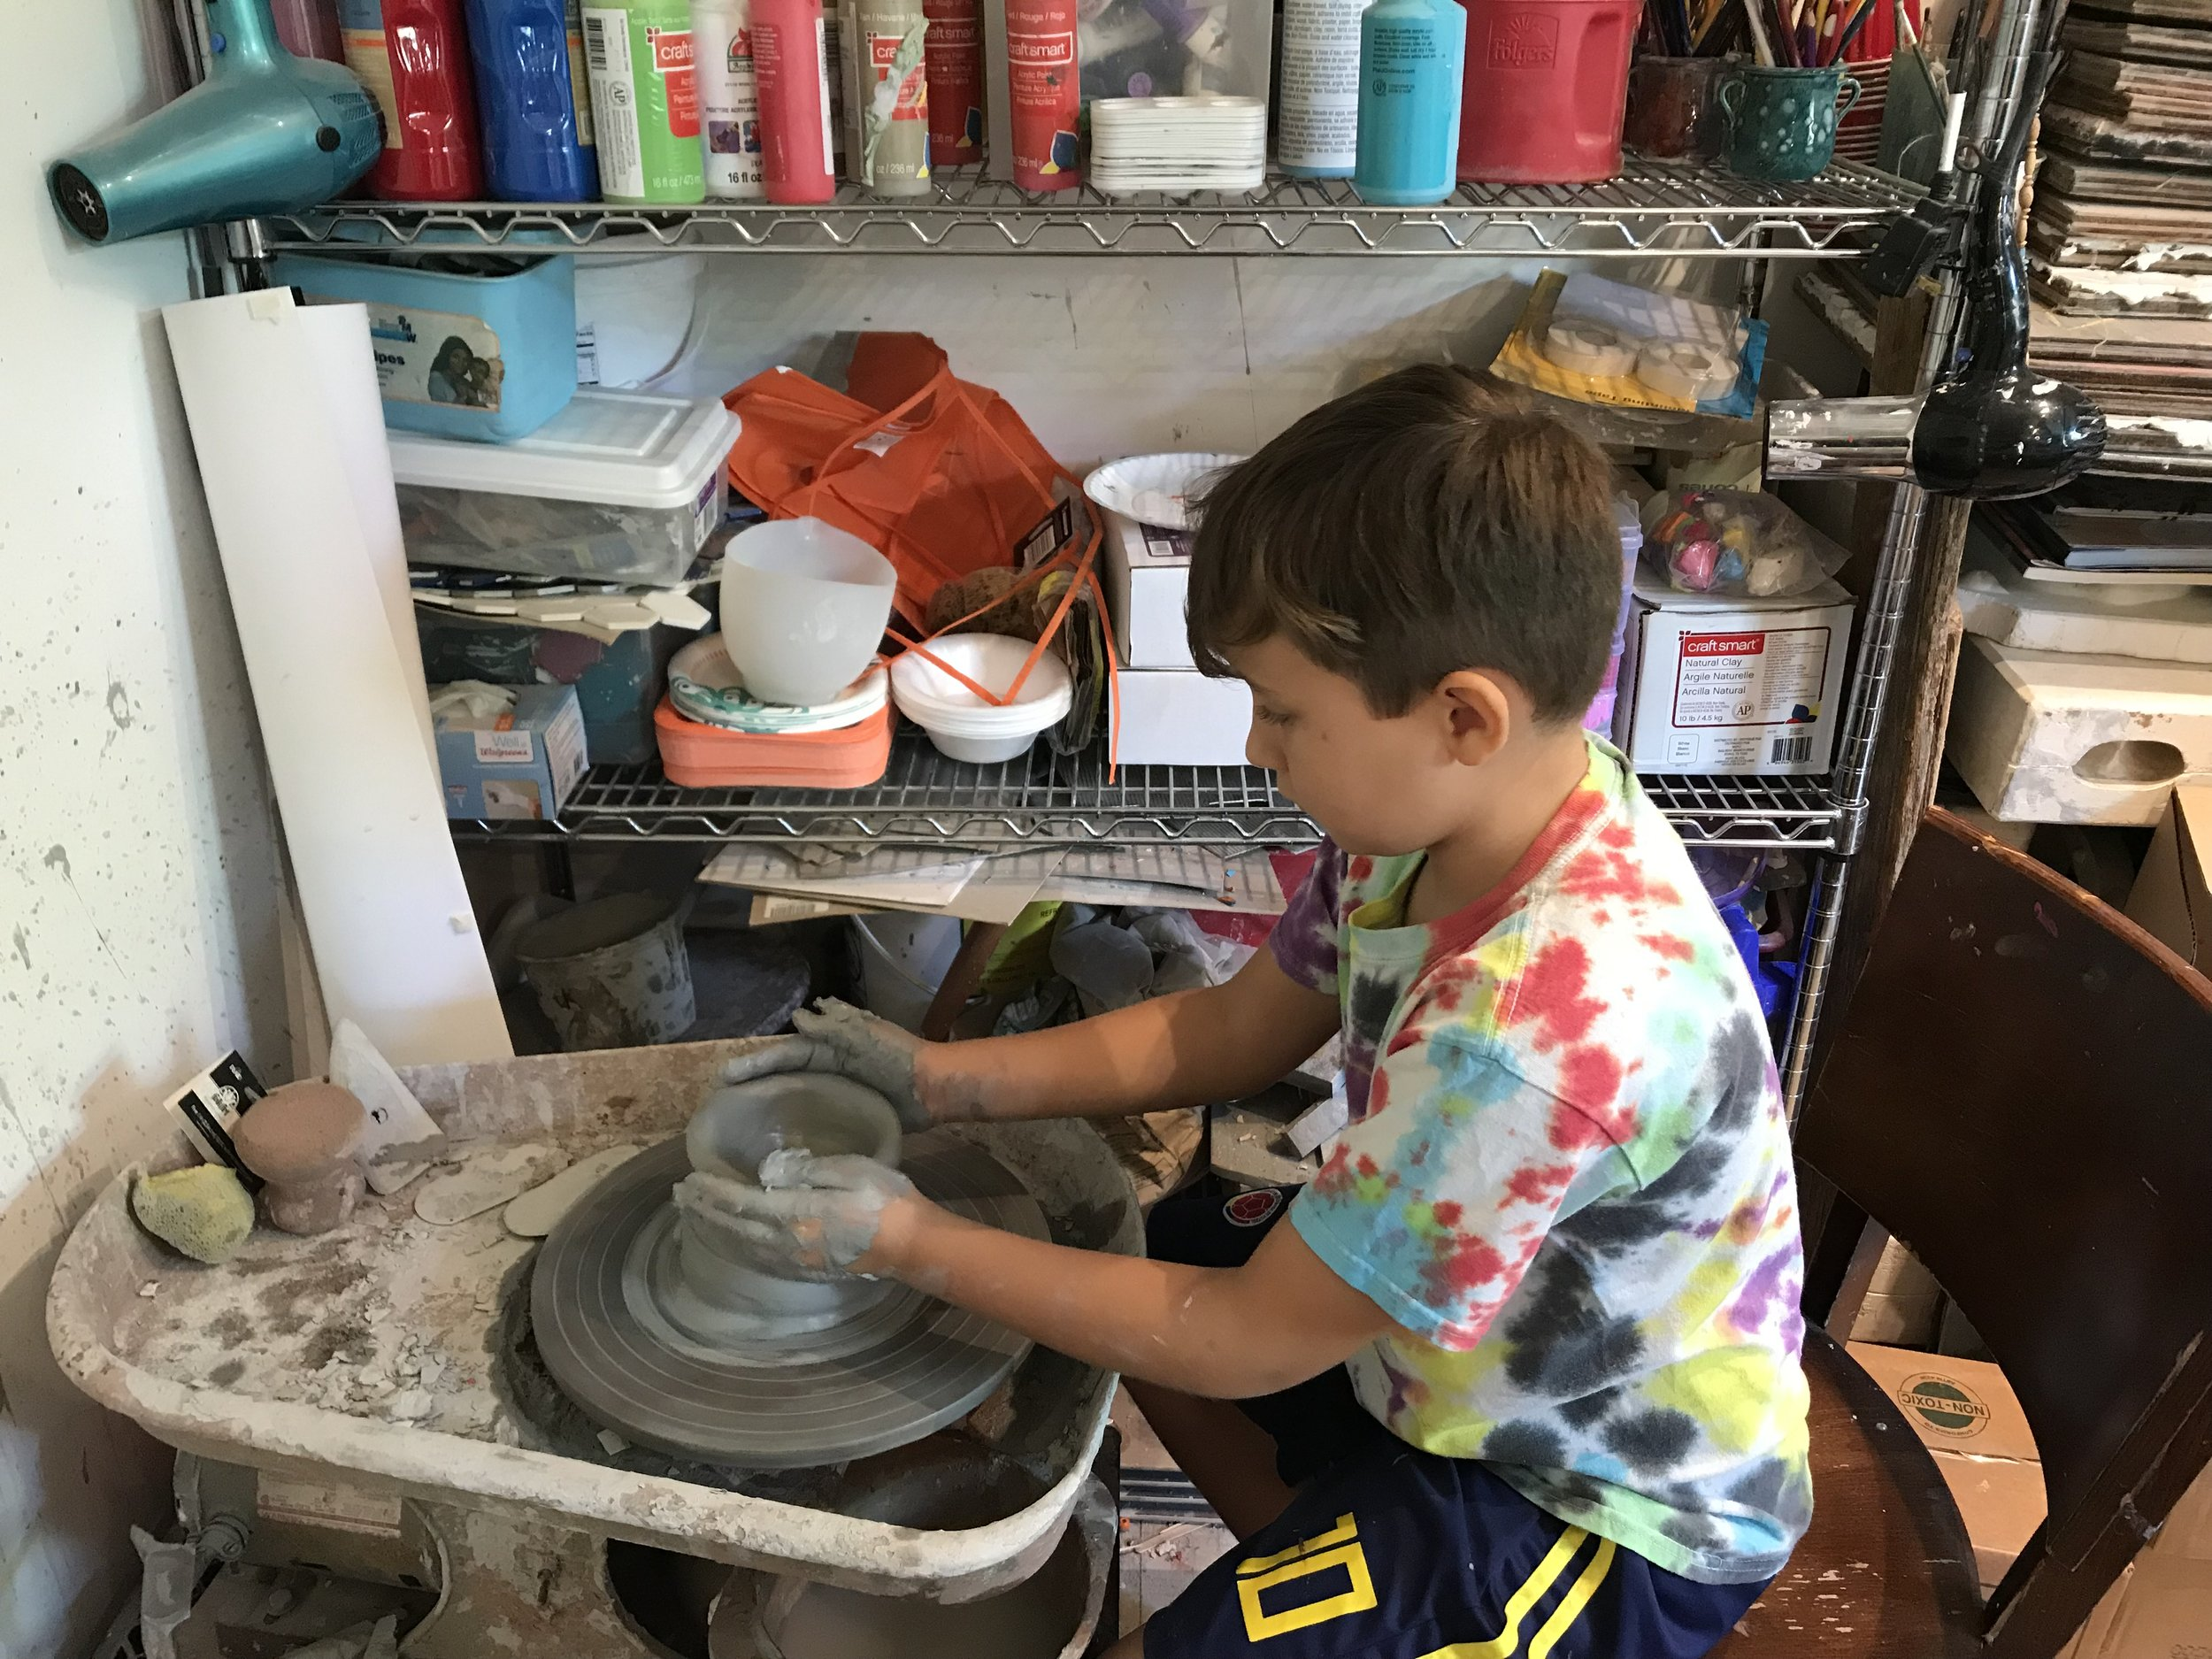 Our daily classes at the Art Factory provide a variety of artistic mediums for children ages 5 and up! Learn more and sign up for a free trial class today!